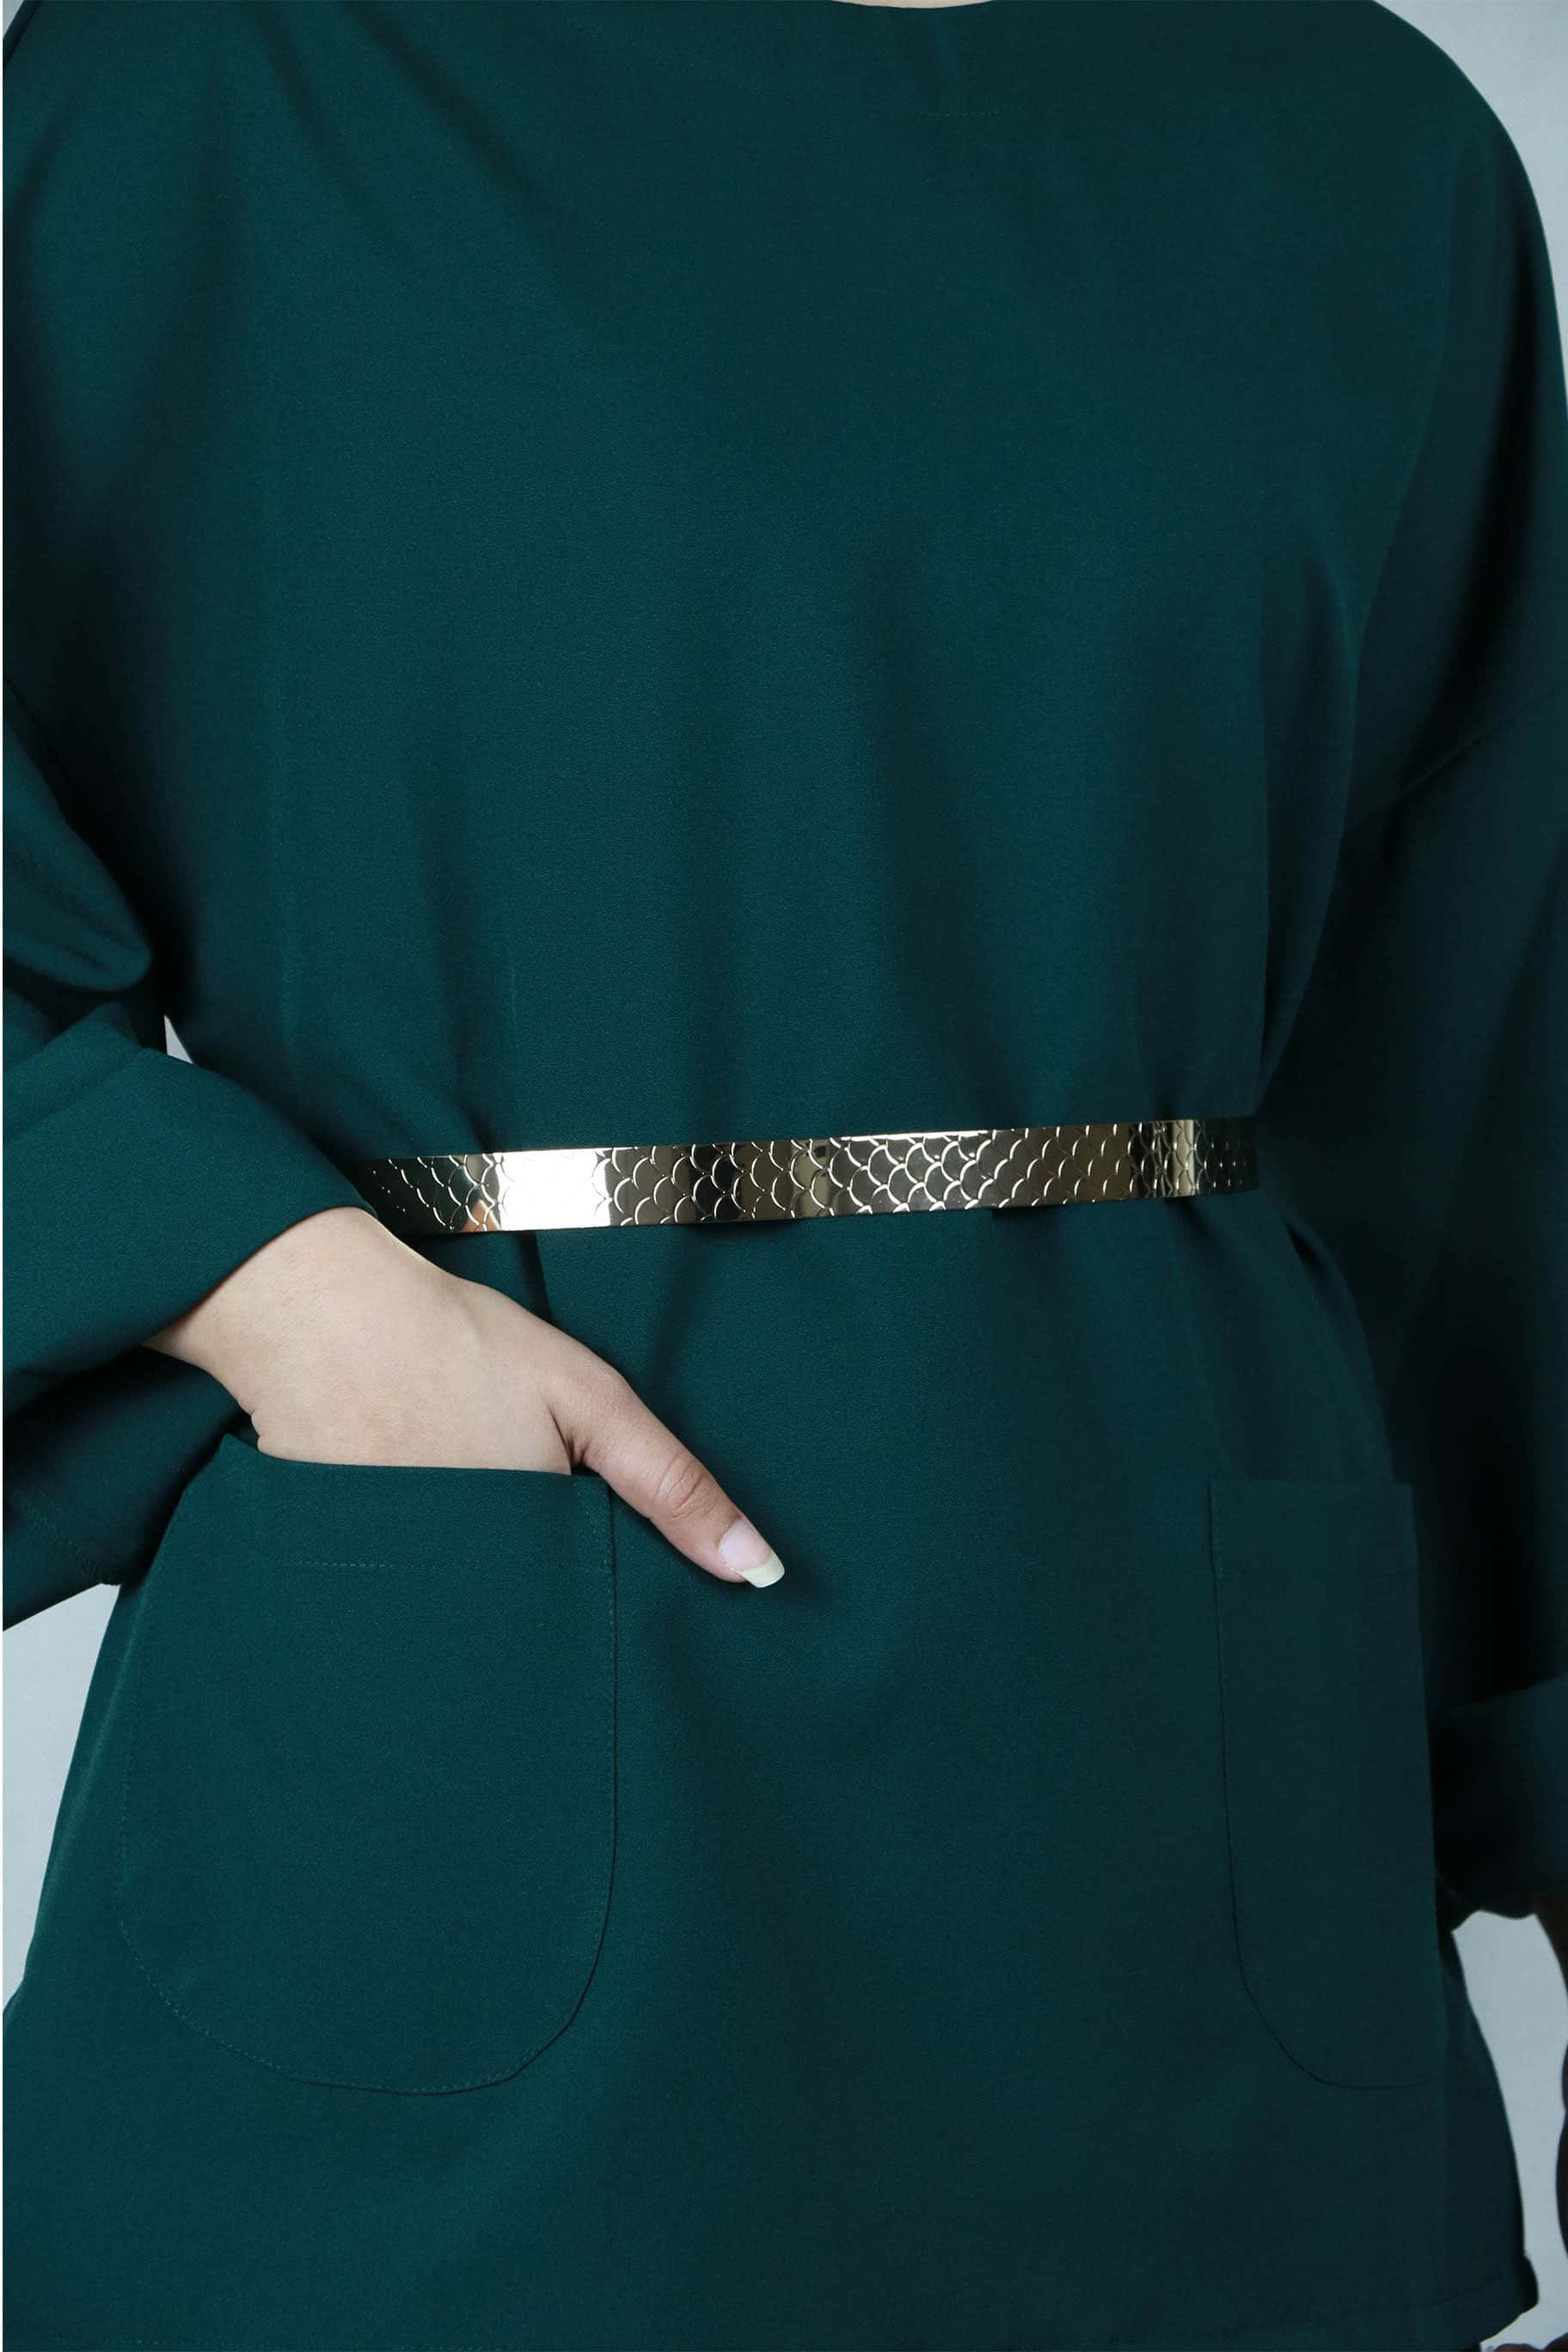 Gold Metal Belt (Adjustable) - Belts - The Modest Look